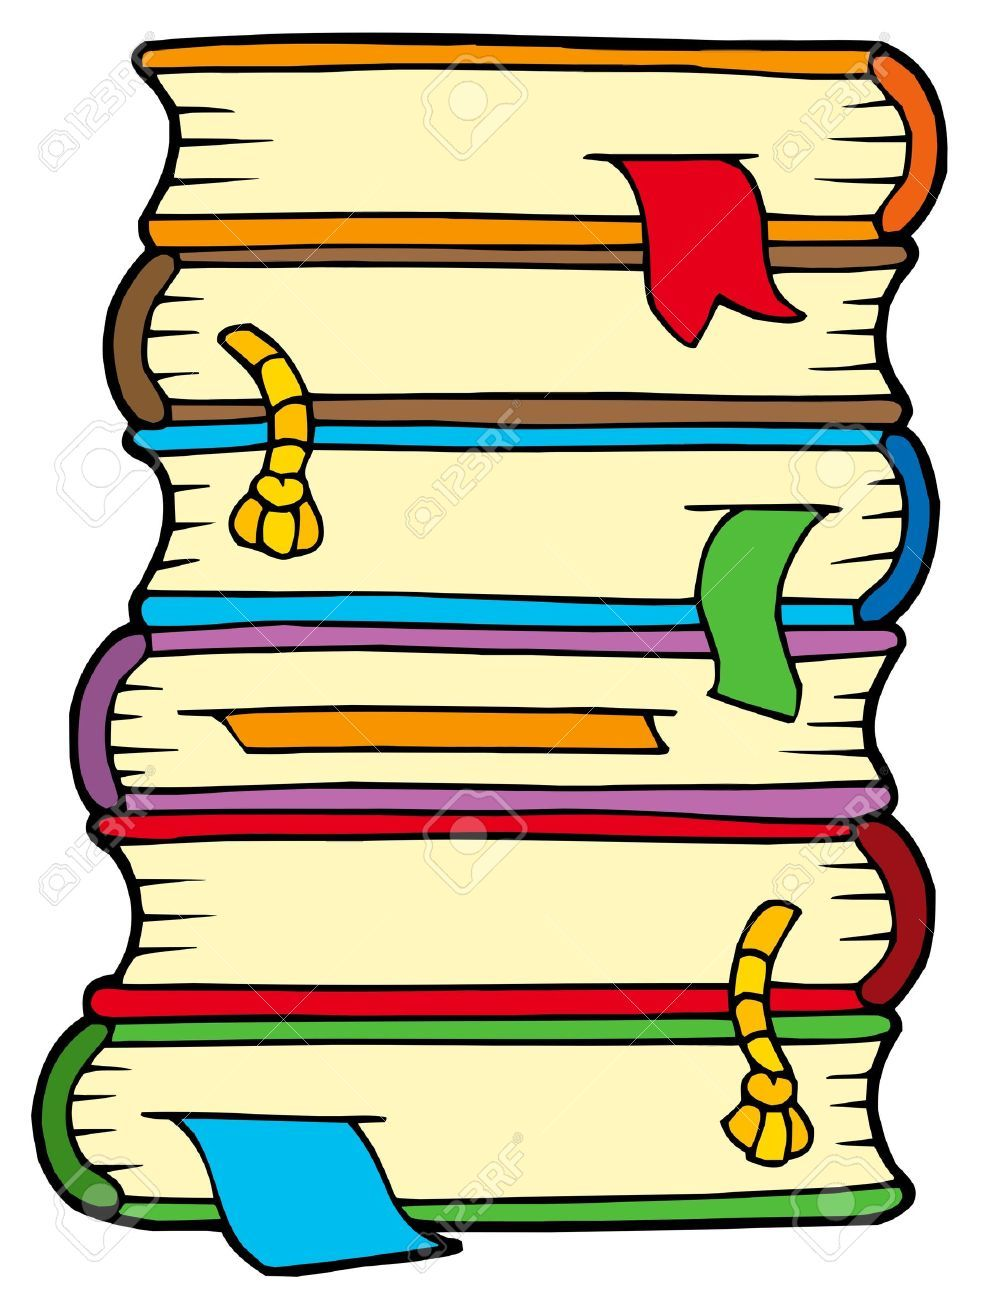 stack of books clipart google search clip art doodling rh pinterest com